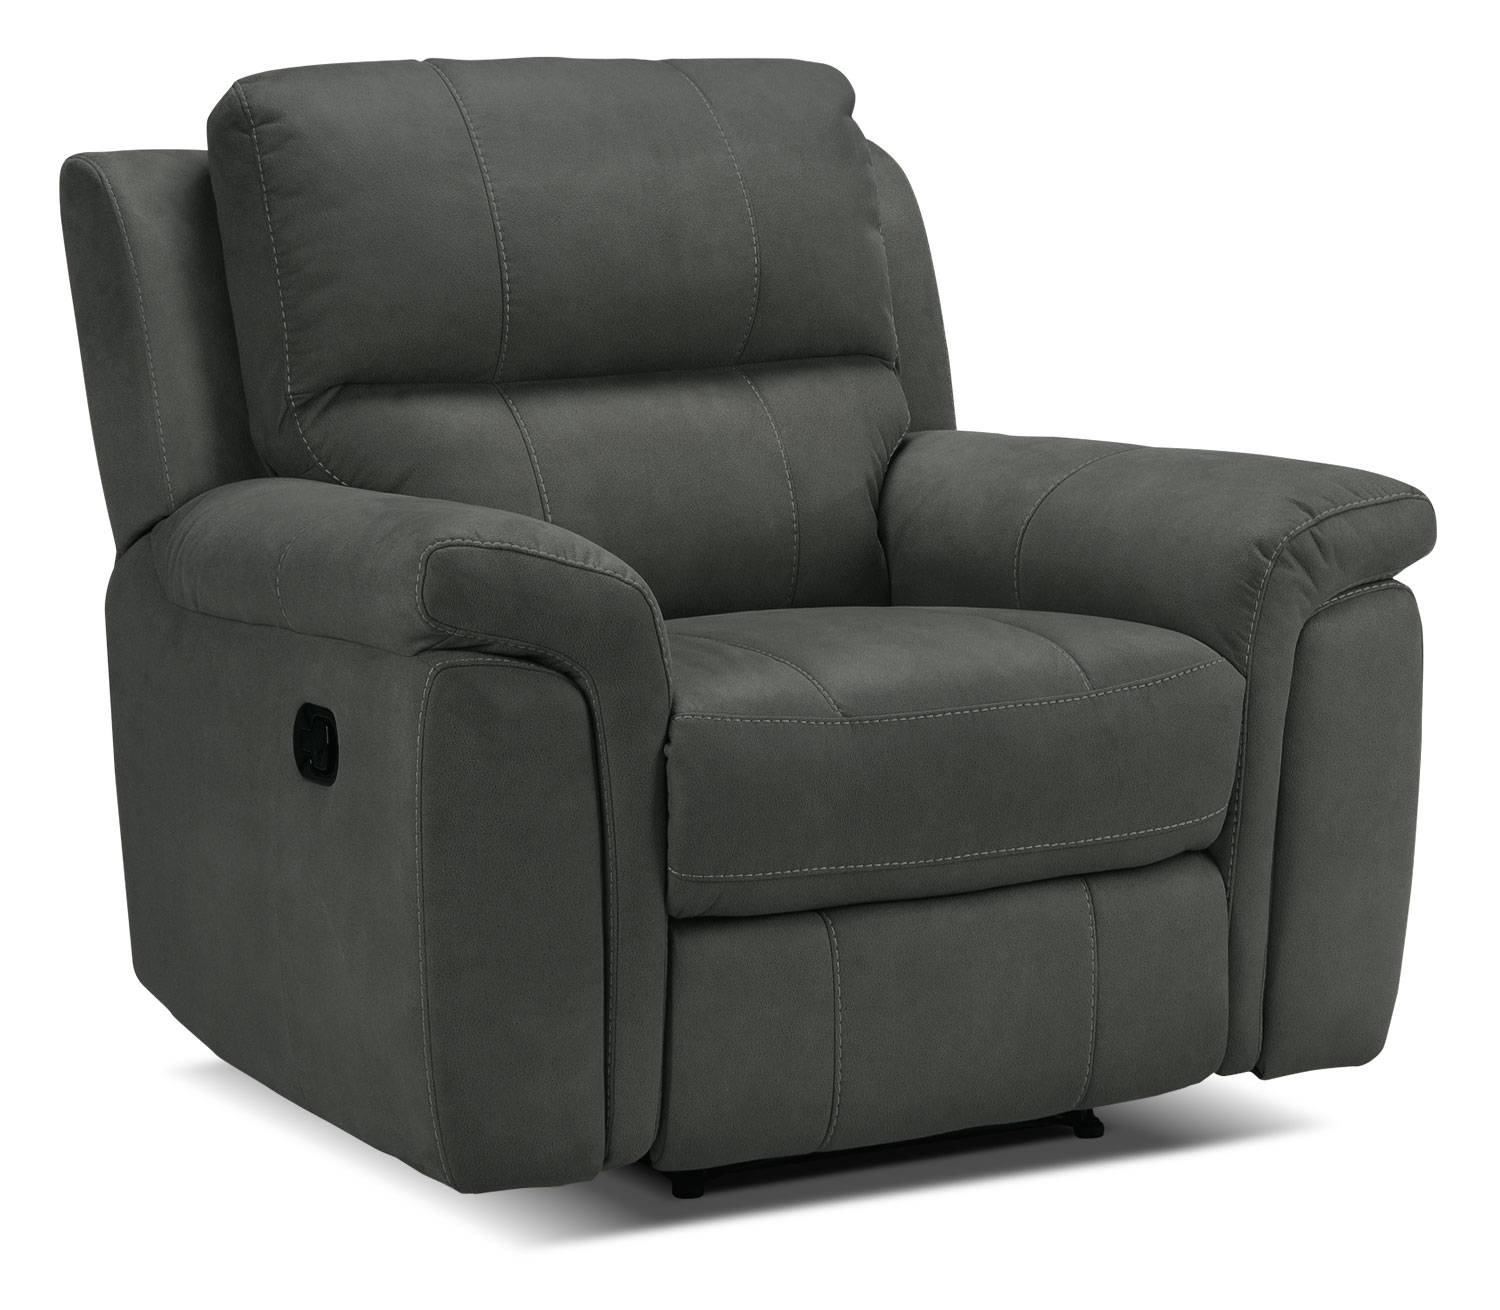 Leon S Furniture Sectional Sofas: Roarke Reclining Sofa - Charcoal